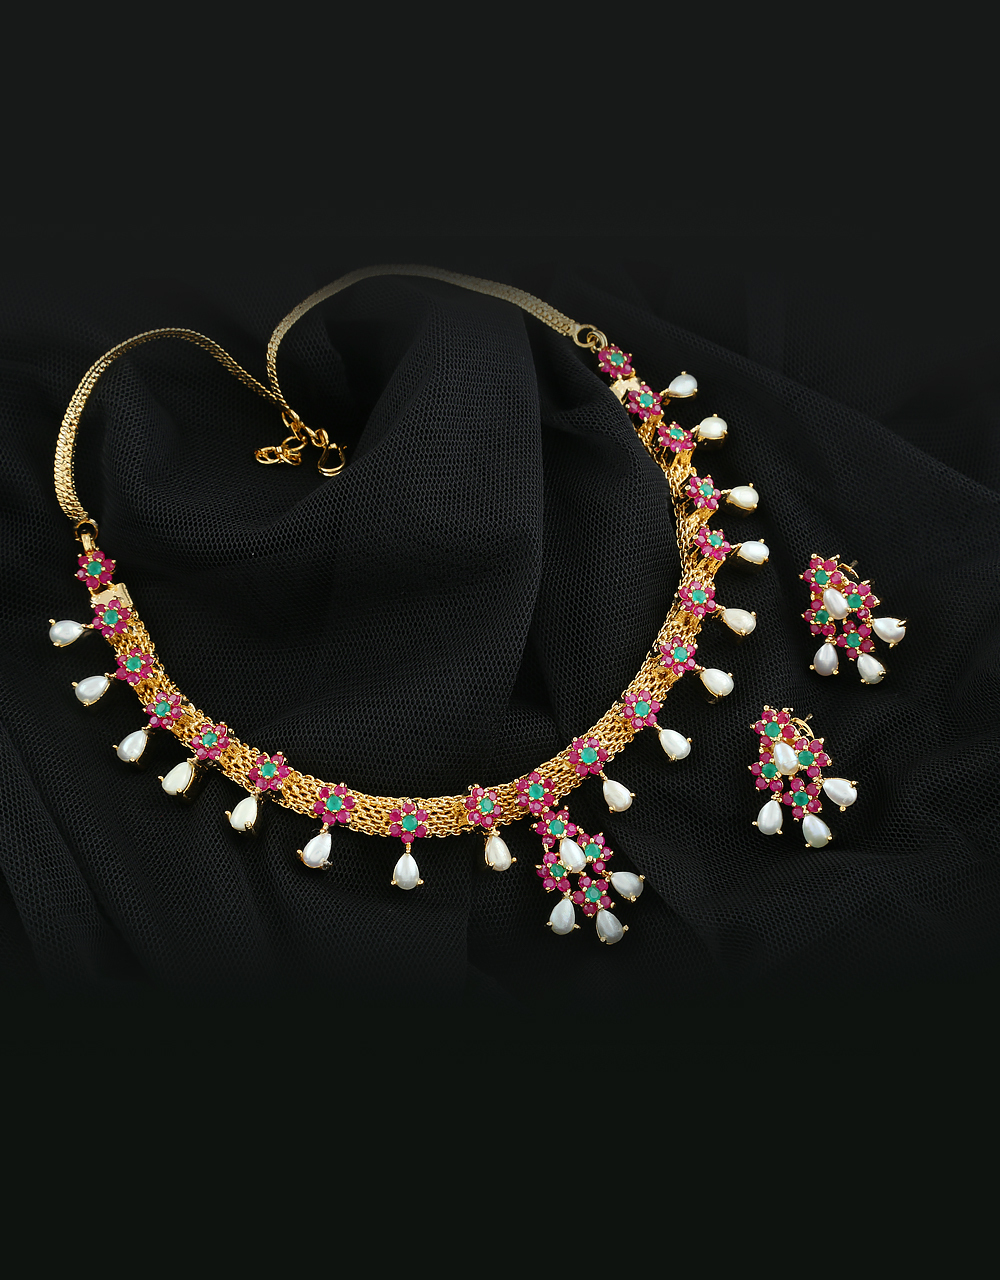 Gold Tone Floral Design Rani-Green Combination With Hanging Pearls Drop Necklace